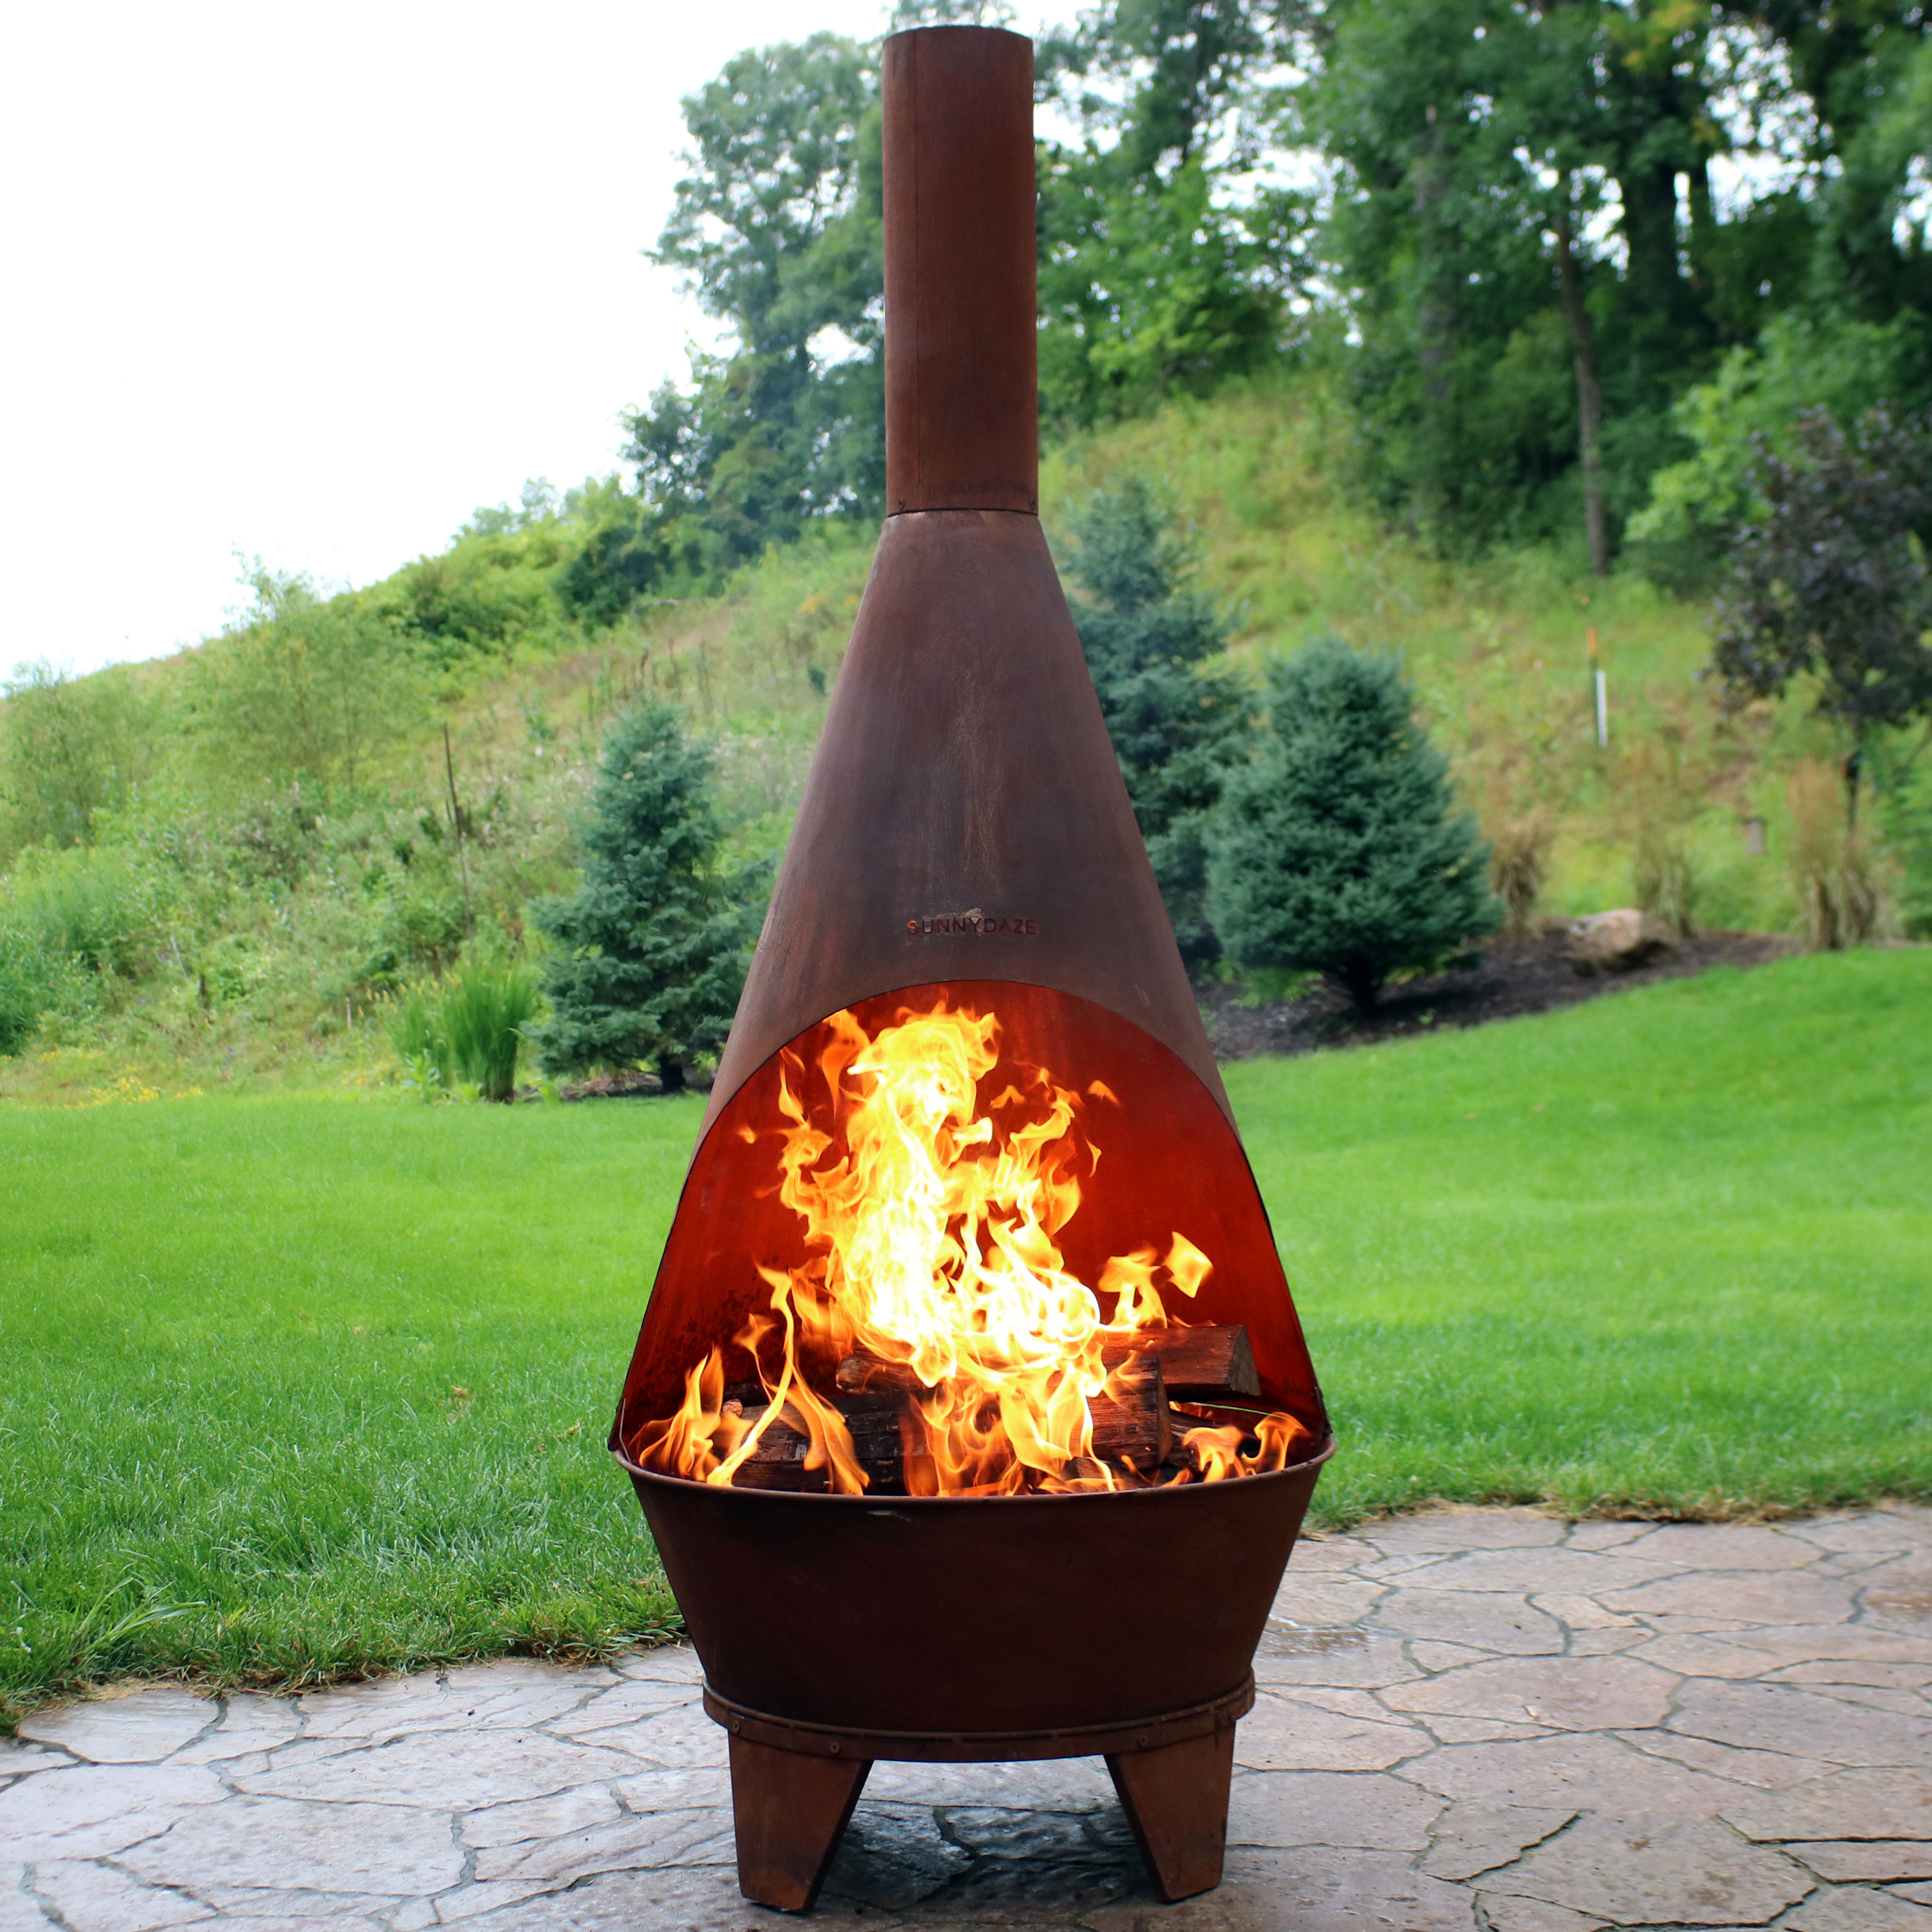 Delicieux Sunnydaze Rustic Chiminea Fire Pit, Outdoor Patio Wood Burning Fireplace, 6  Foot Tall